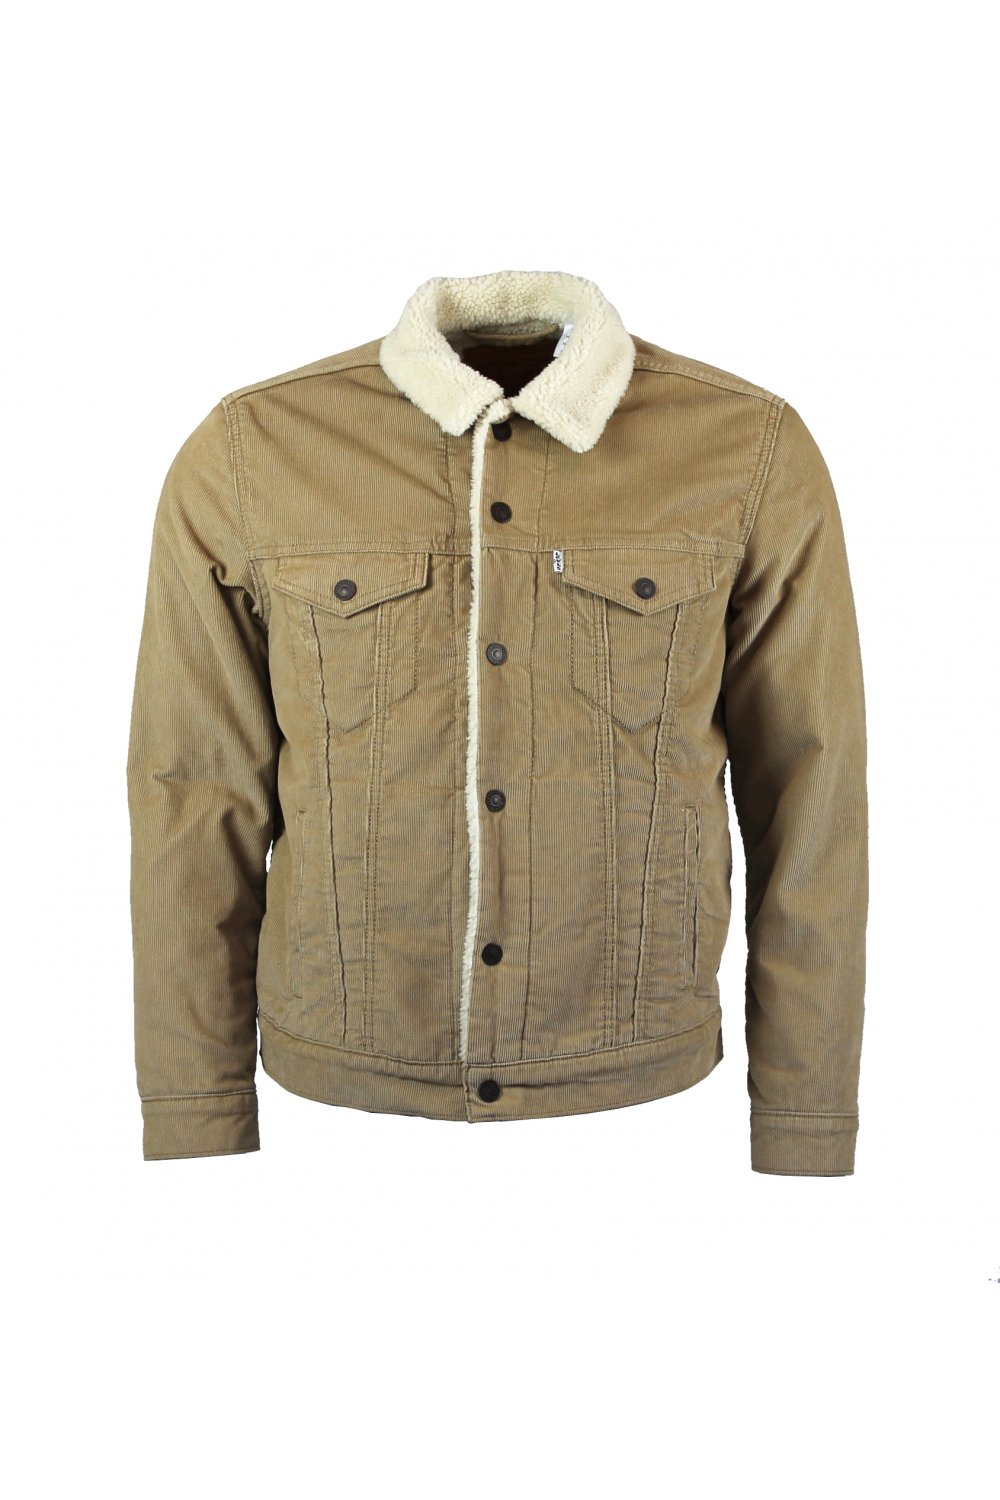 levi 39 s type 3 sherpa trucker jacket beige cord ebay. Black Bedroom Furniture Sets. Home Design Ideas